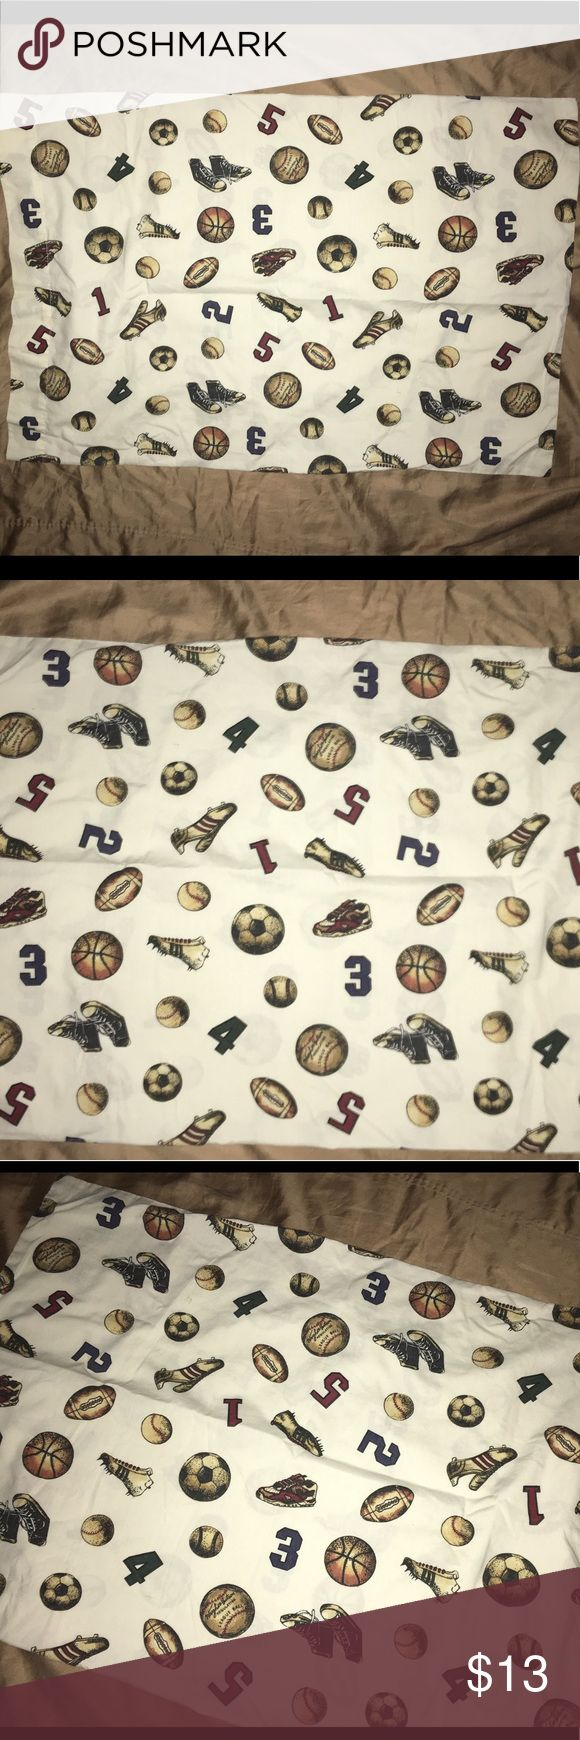 "Whisper soft mills sports themed pillow case Thank you for viewing my listing, for sale is a boys, whisper soft mills brand, 30"" x 20"", sport themed a pillowcase. Pillowcase shows a football, baseball, basketball, soccer ball, as well as numbers and different cleats for the sports  Excellent condition no rips or stains. If you have any questions or would like additional photos please feel free to ask. whisper soft mills Accessories"